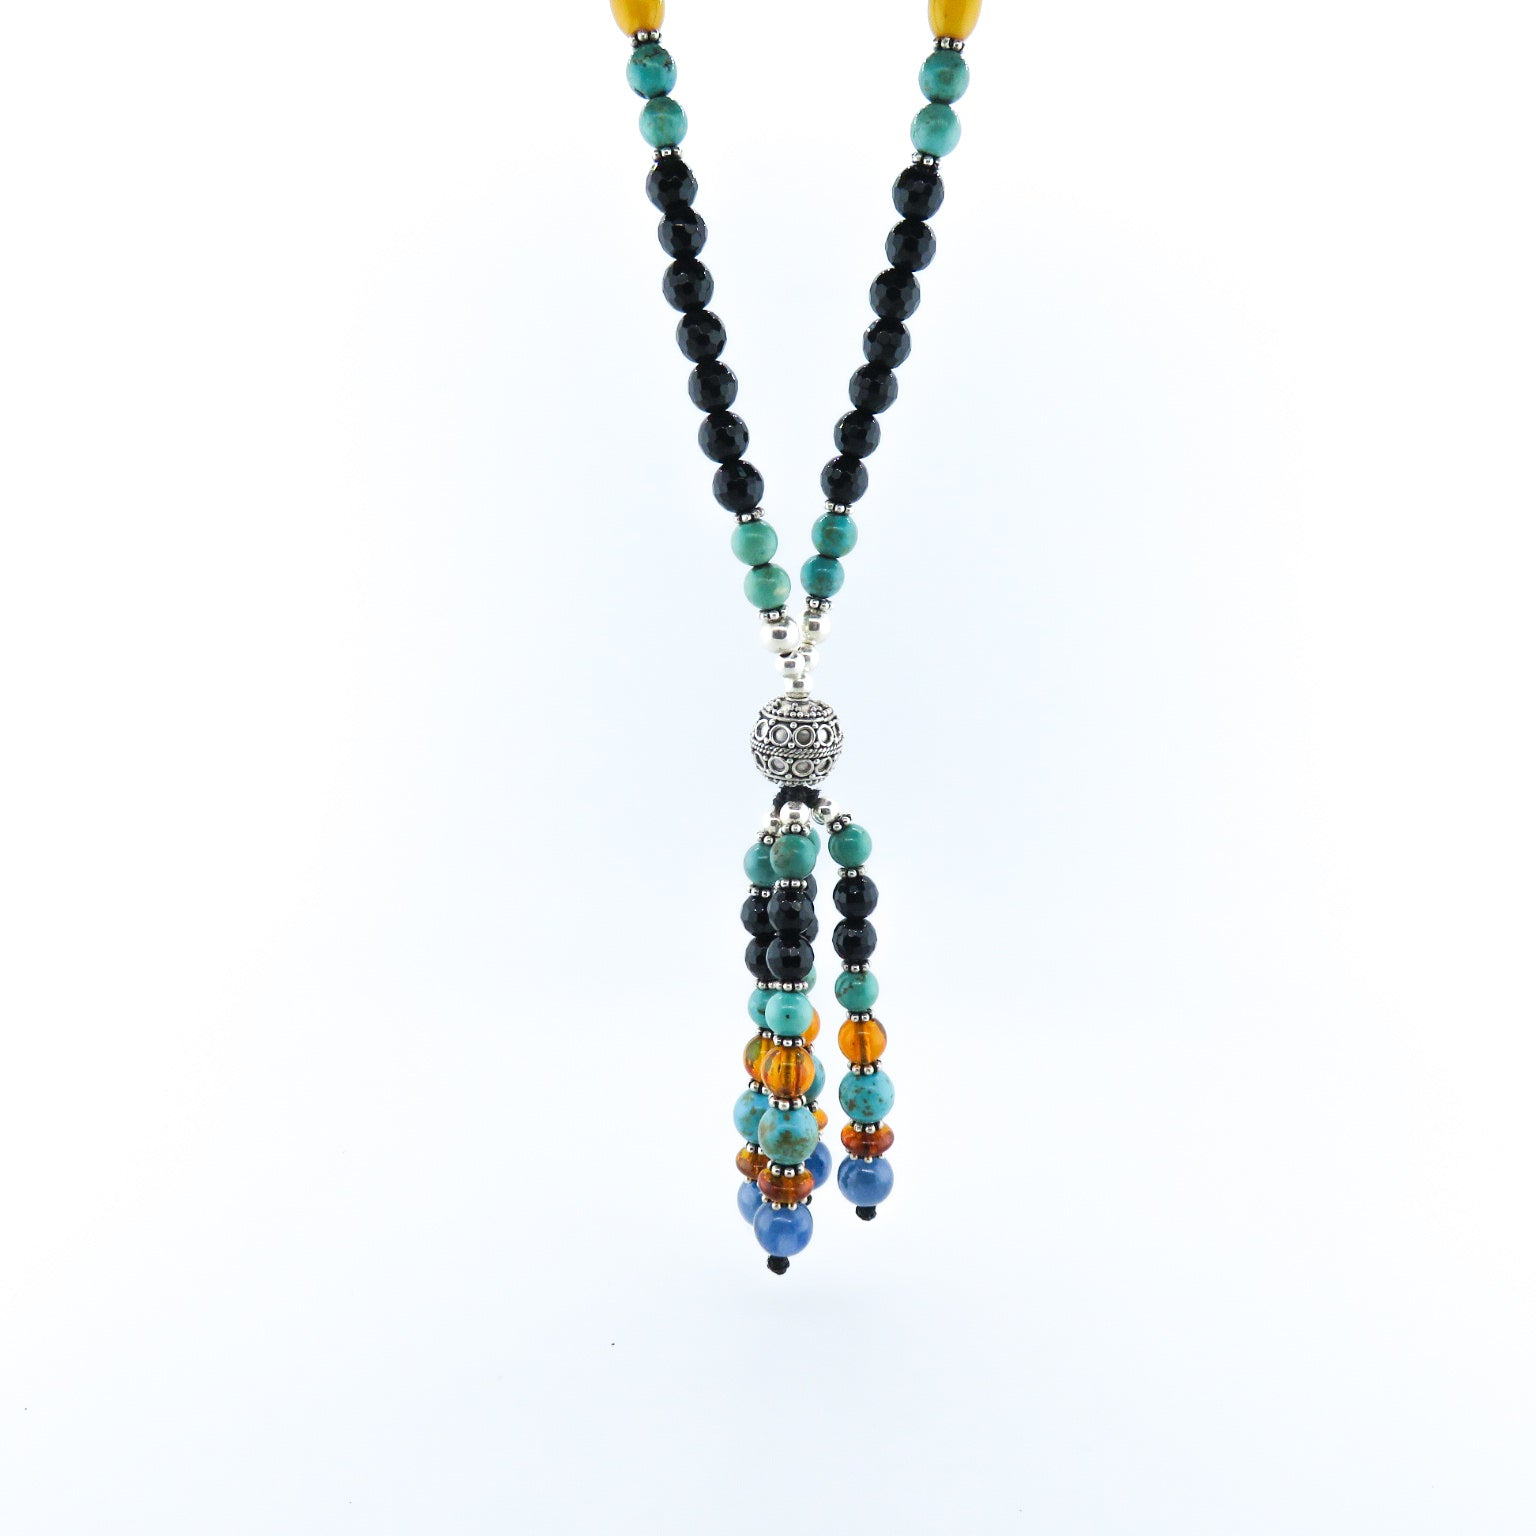 Black Onyx Necklace with Turquoise, Amber, Kyanite and Silver Beads